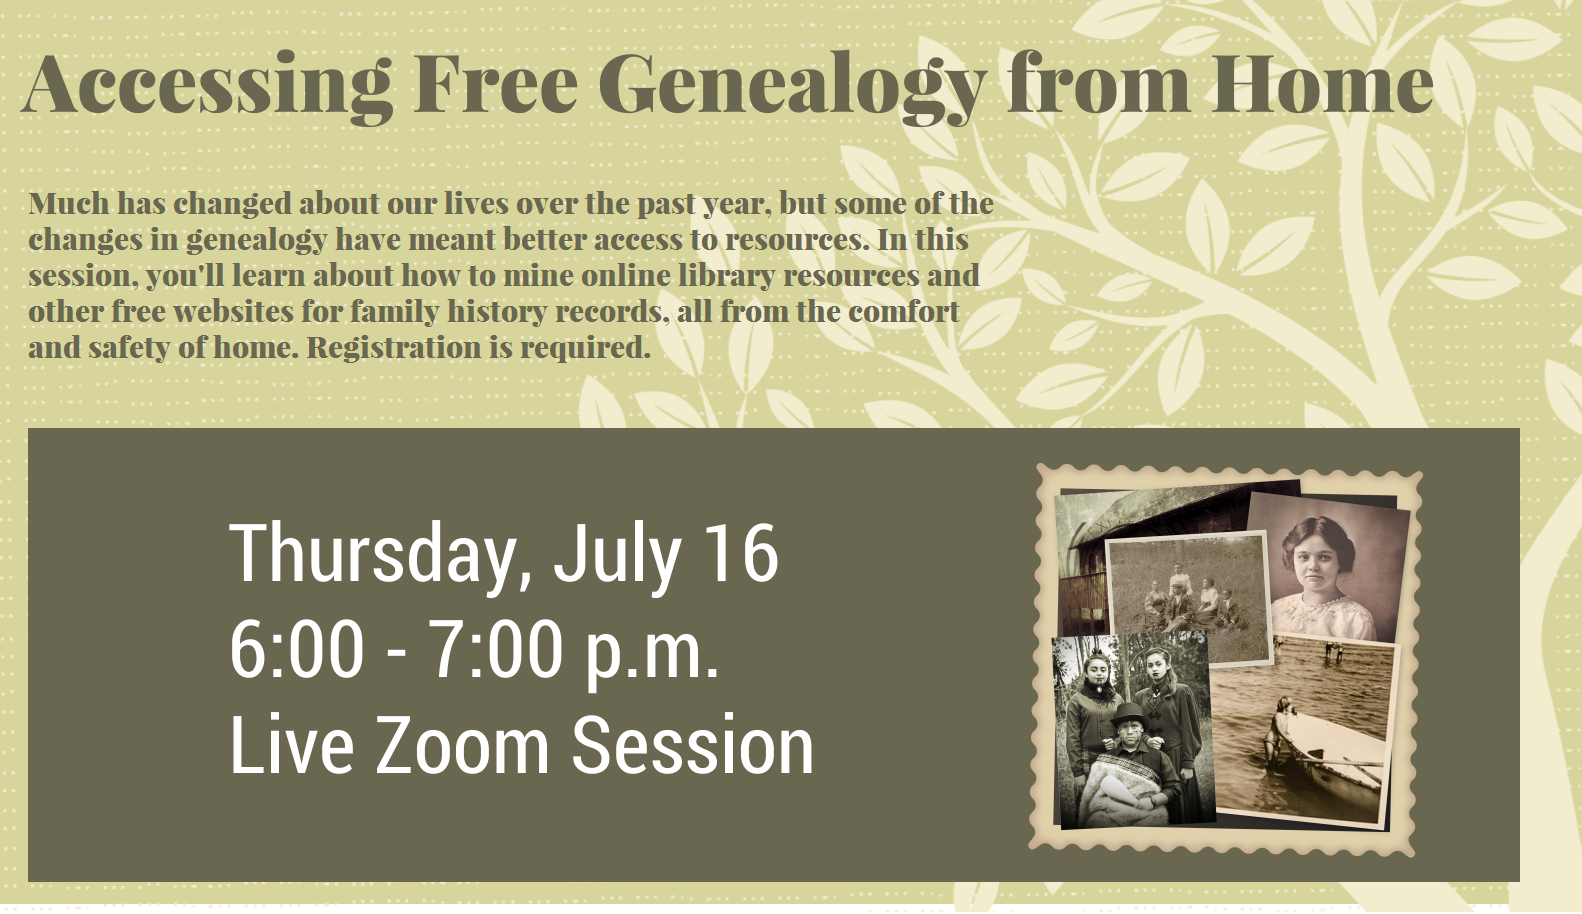 Accessing Free Genealogical Resources from Home